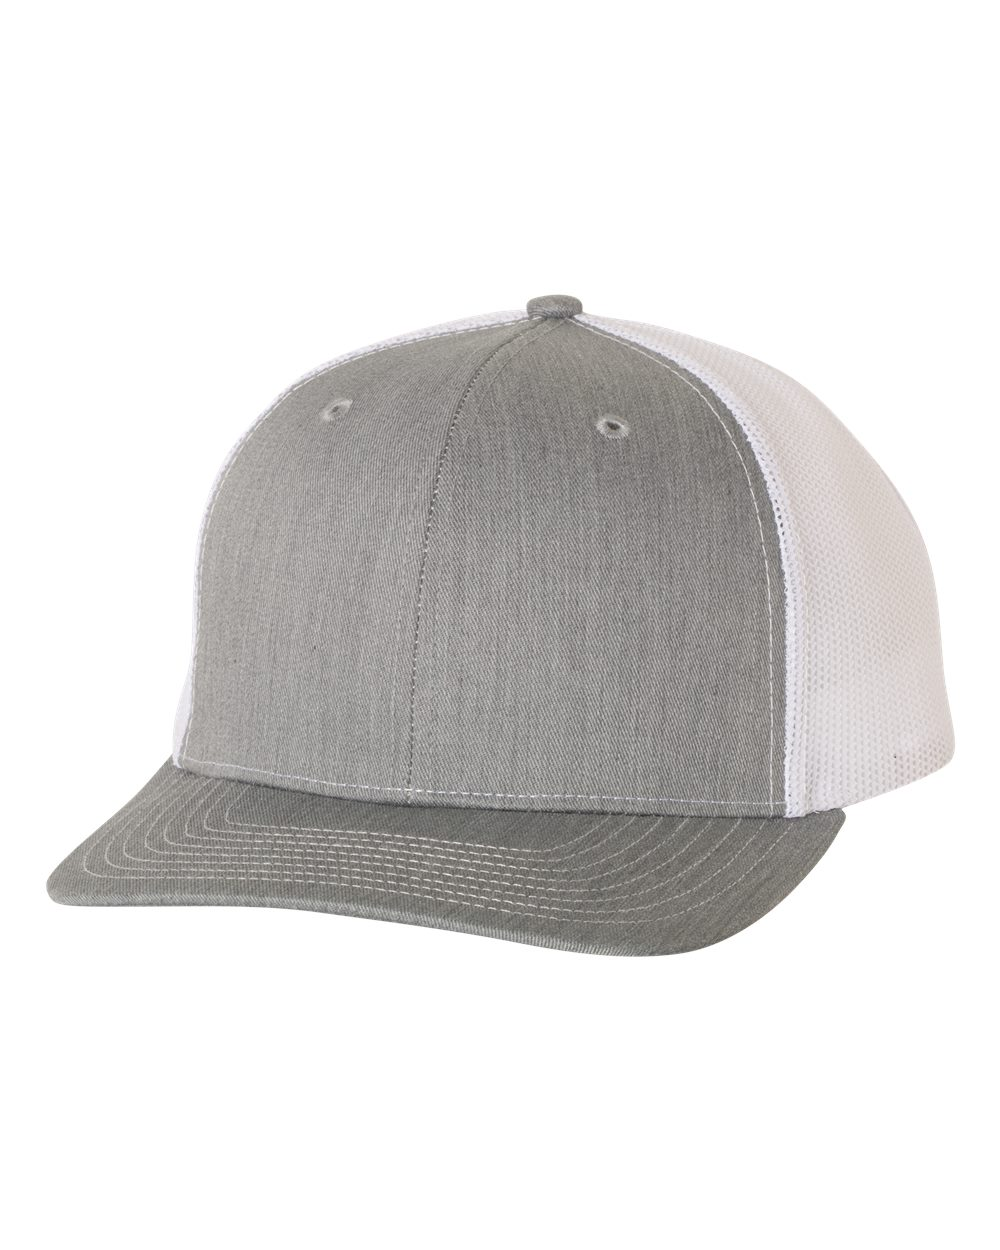 Heather Grey / White